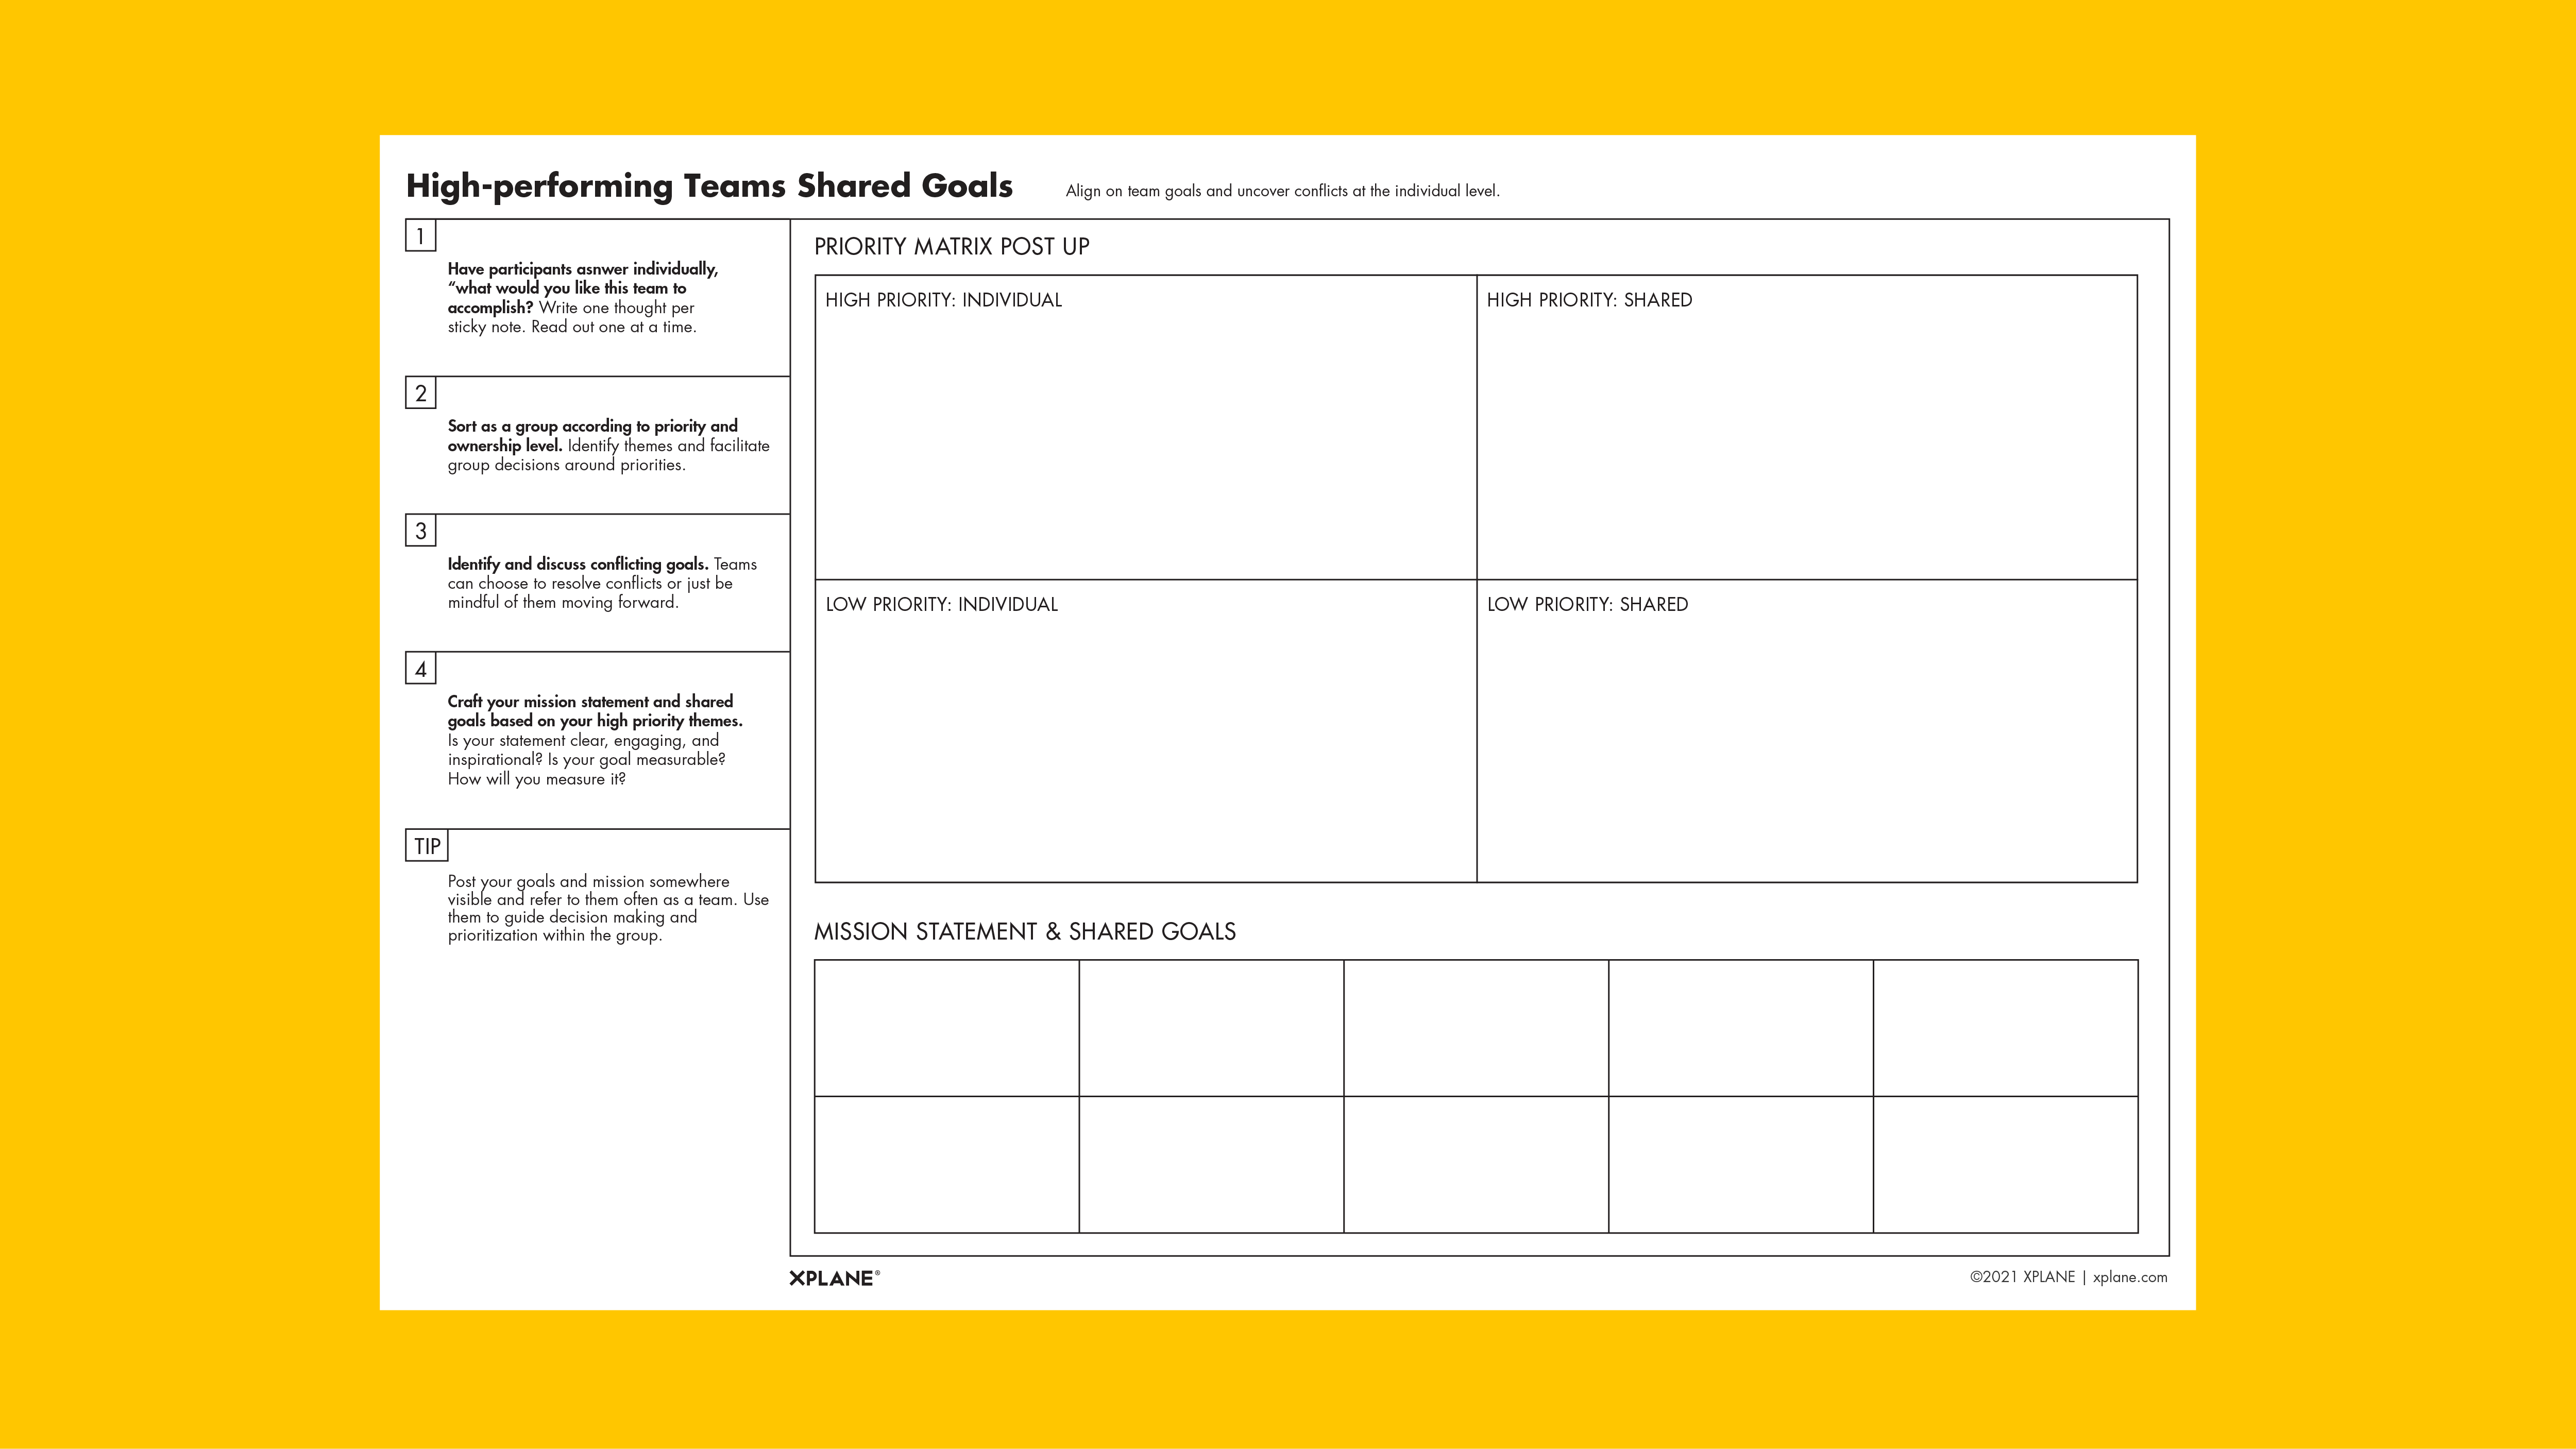 High-performing Teams Shared Goals worksheet against a yellow background